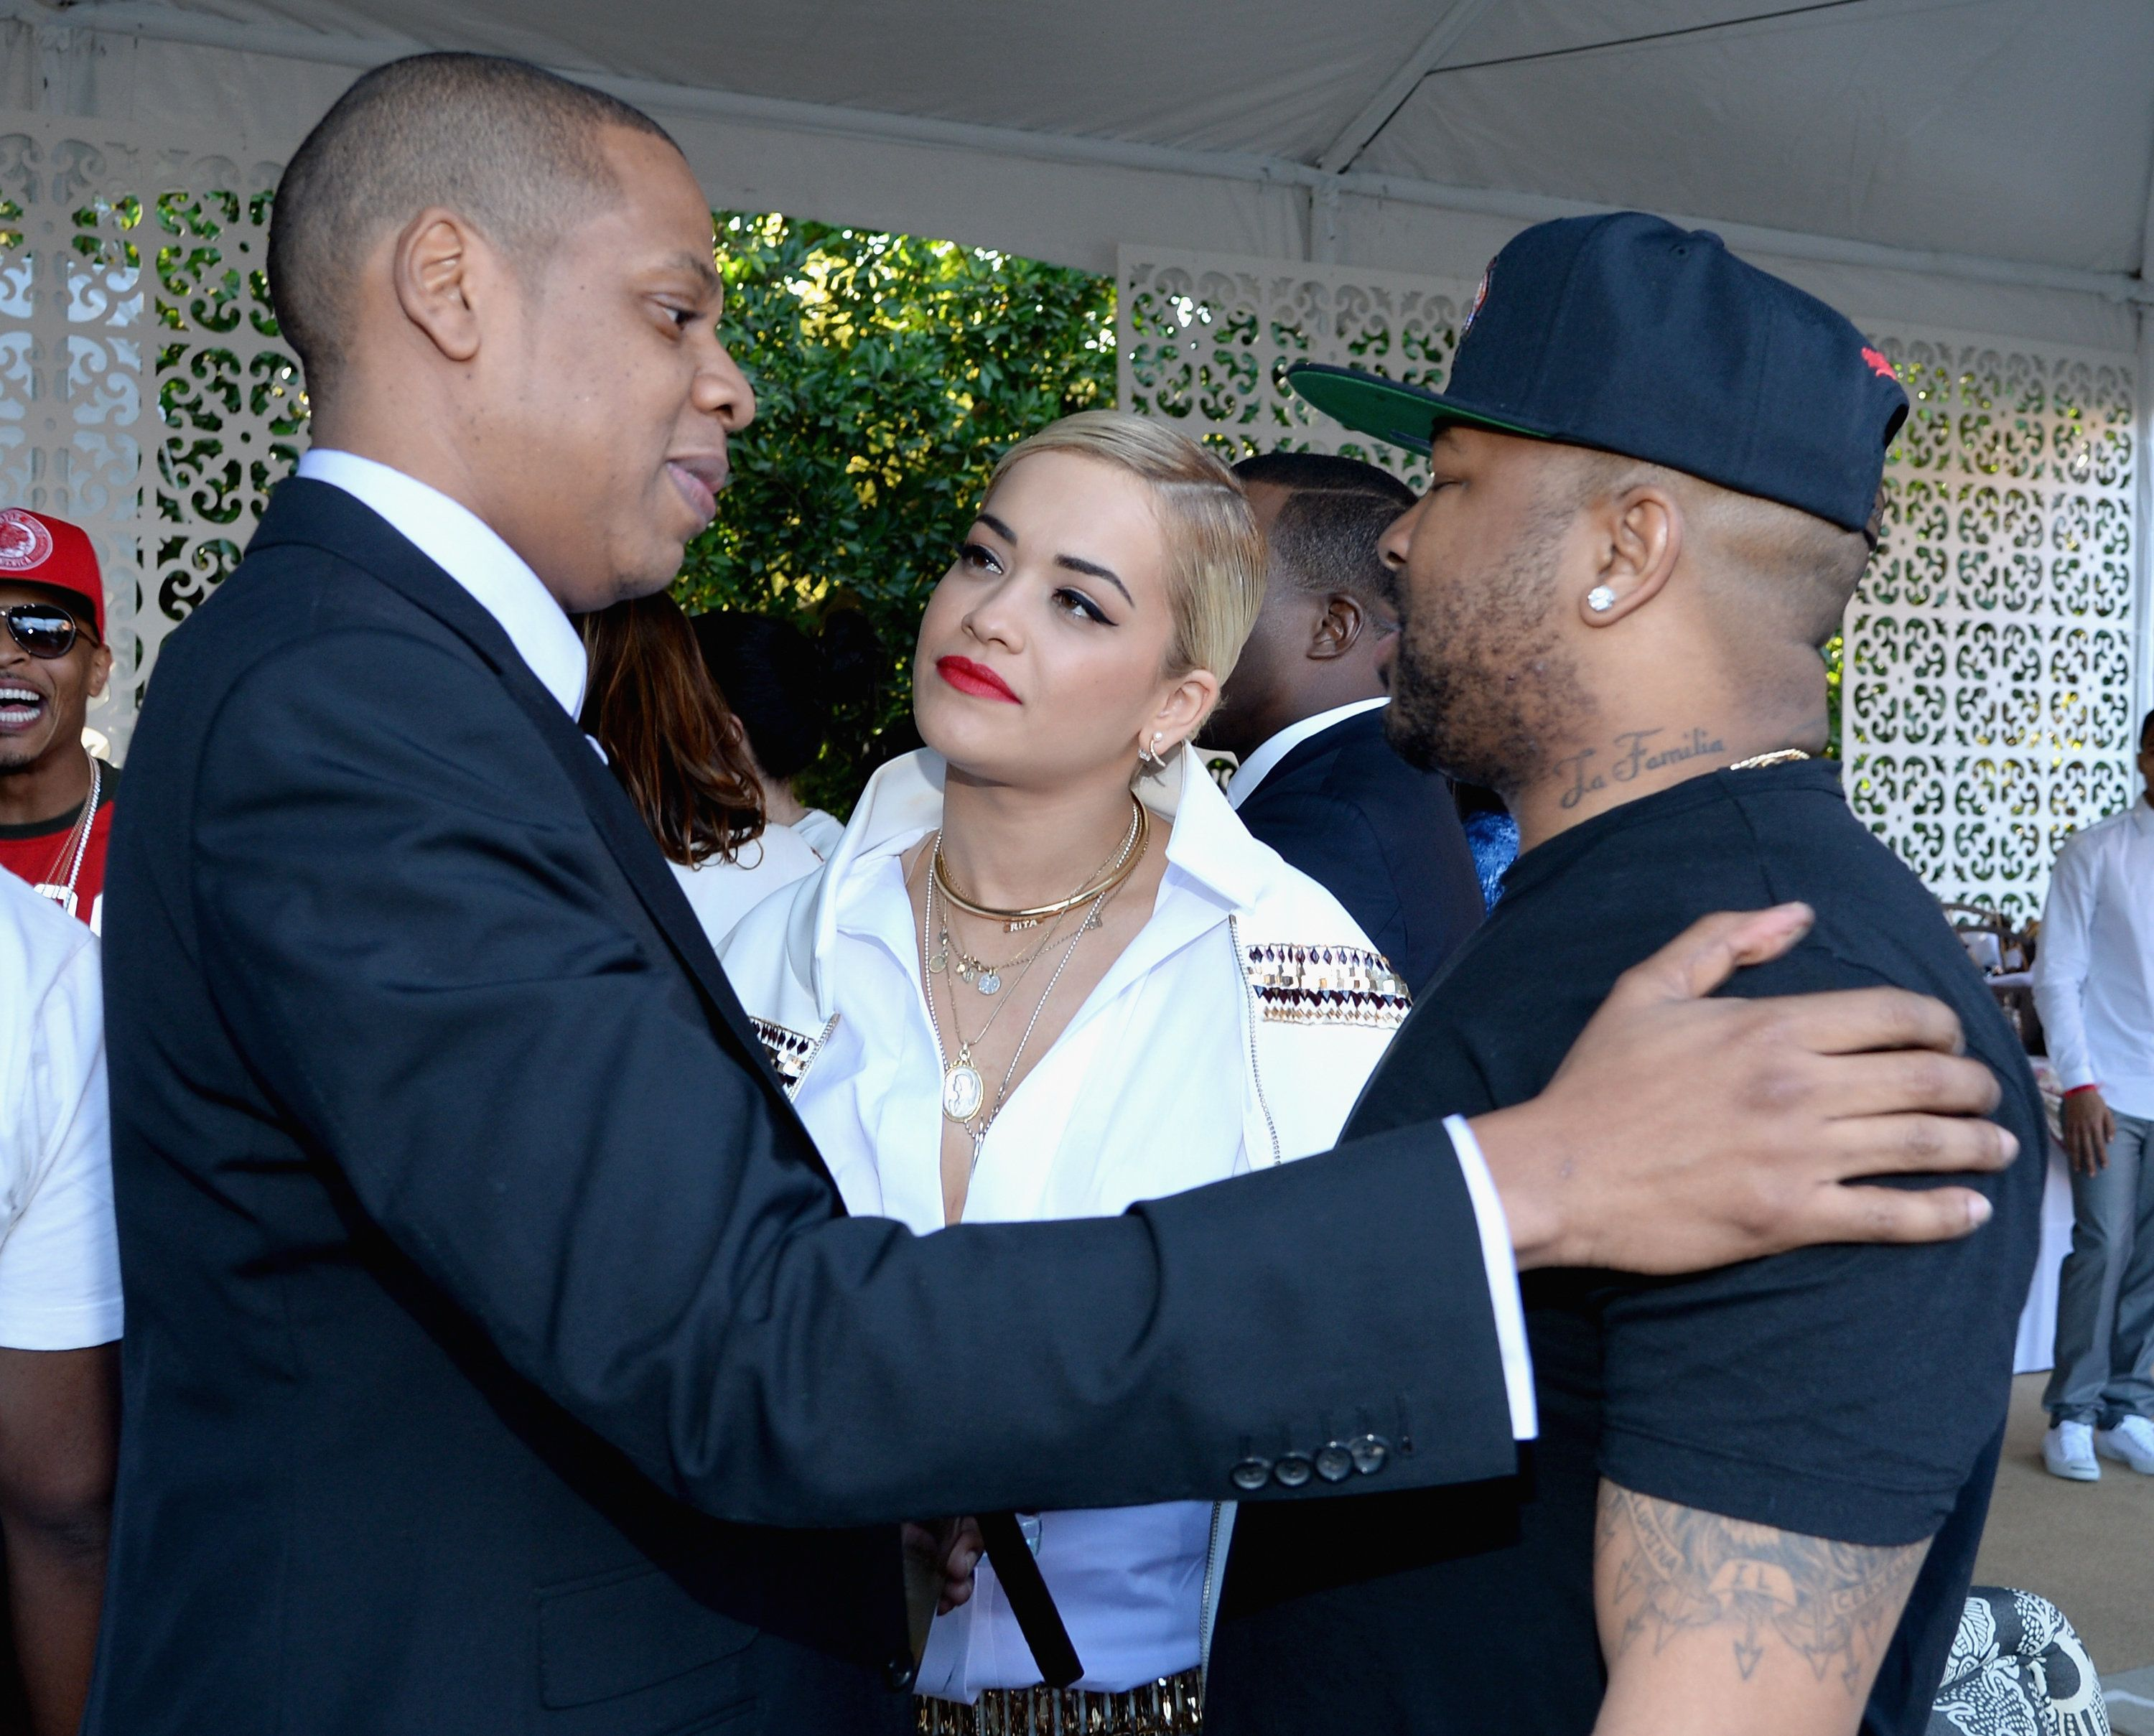 Rita Ora Attempts To Downplay Reports Of 'Bad Blood' With Former Label Boss Jay